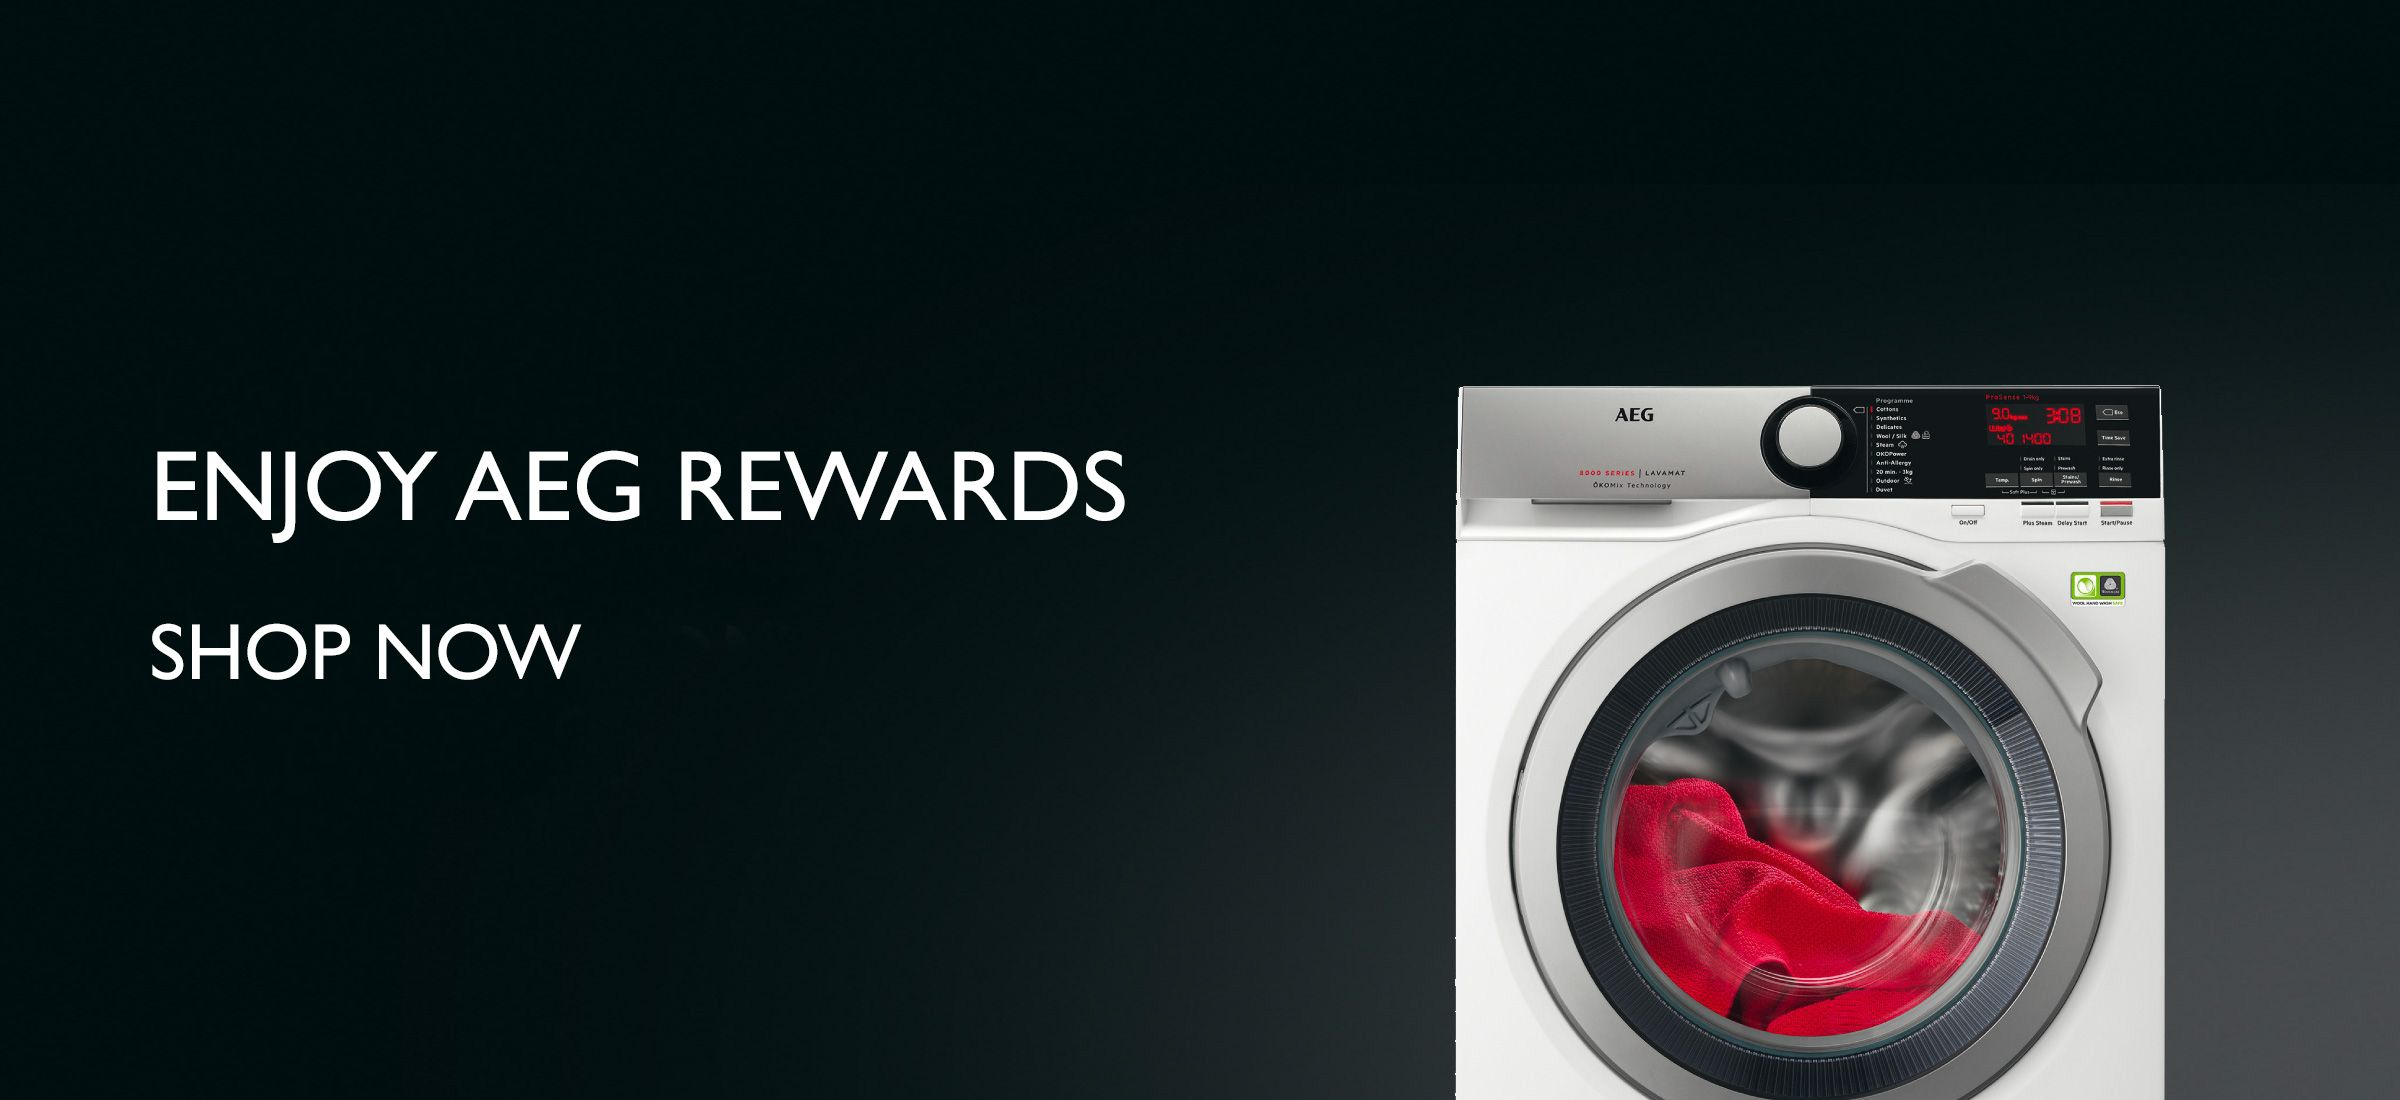 AEG Rewards